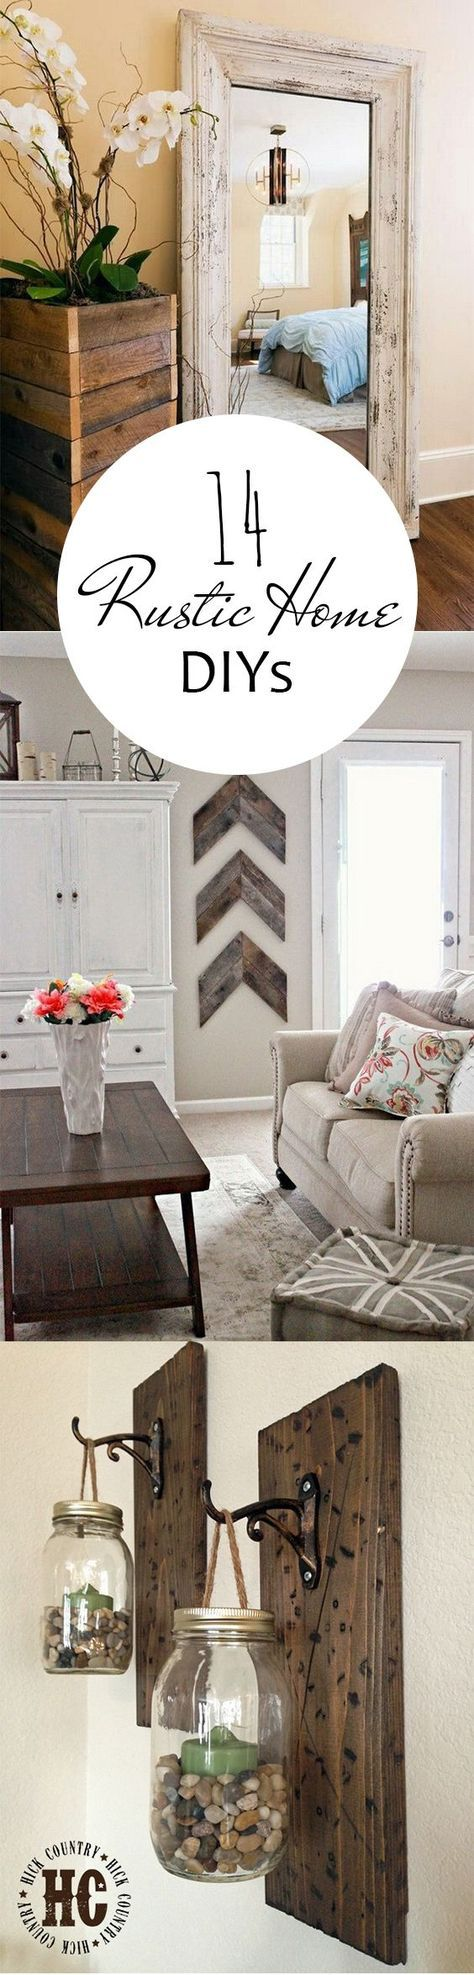 DIY projects easy DIY rustic home farmhouse